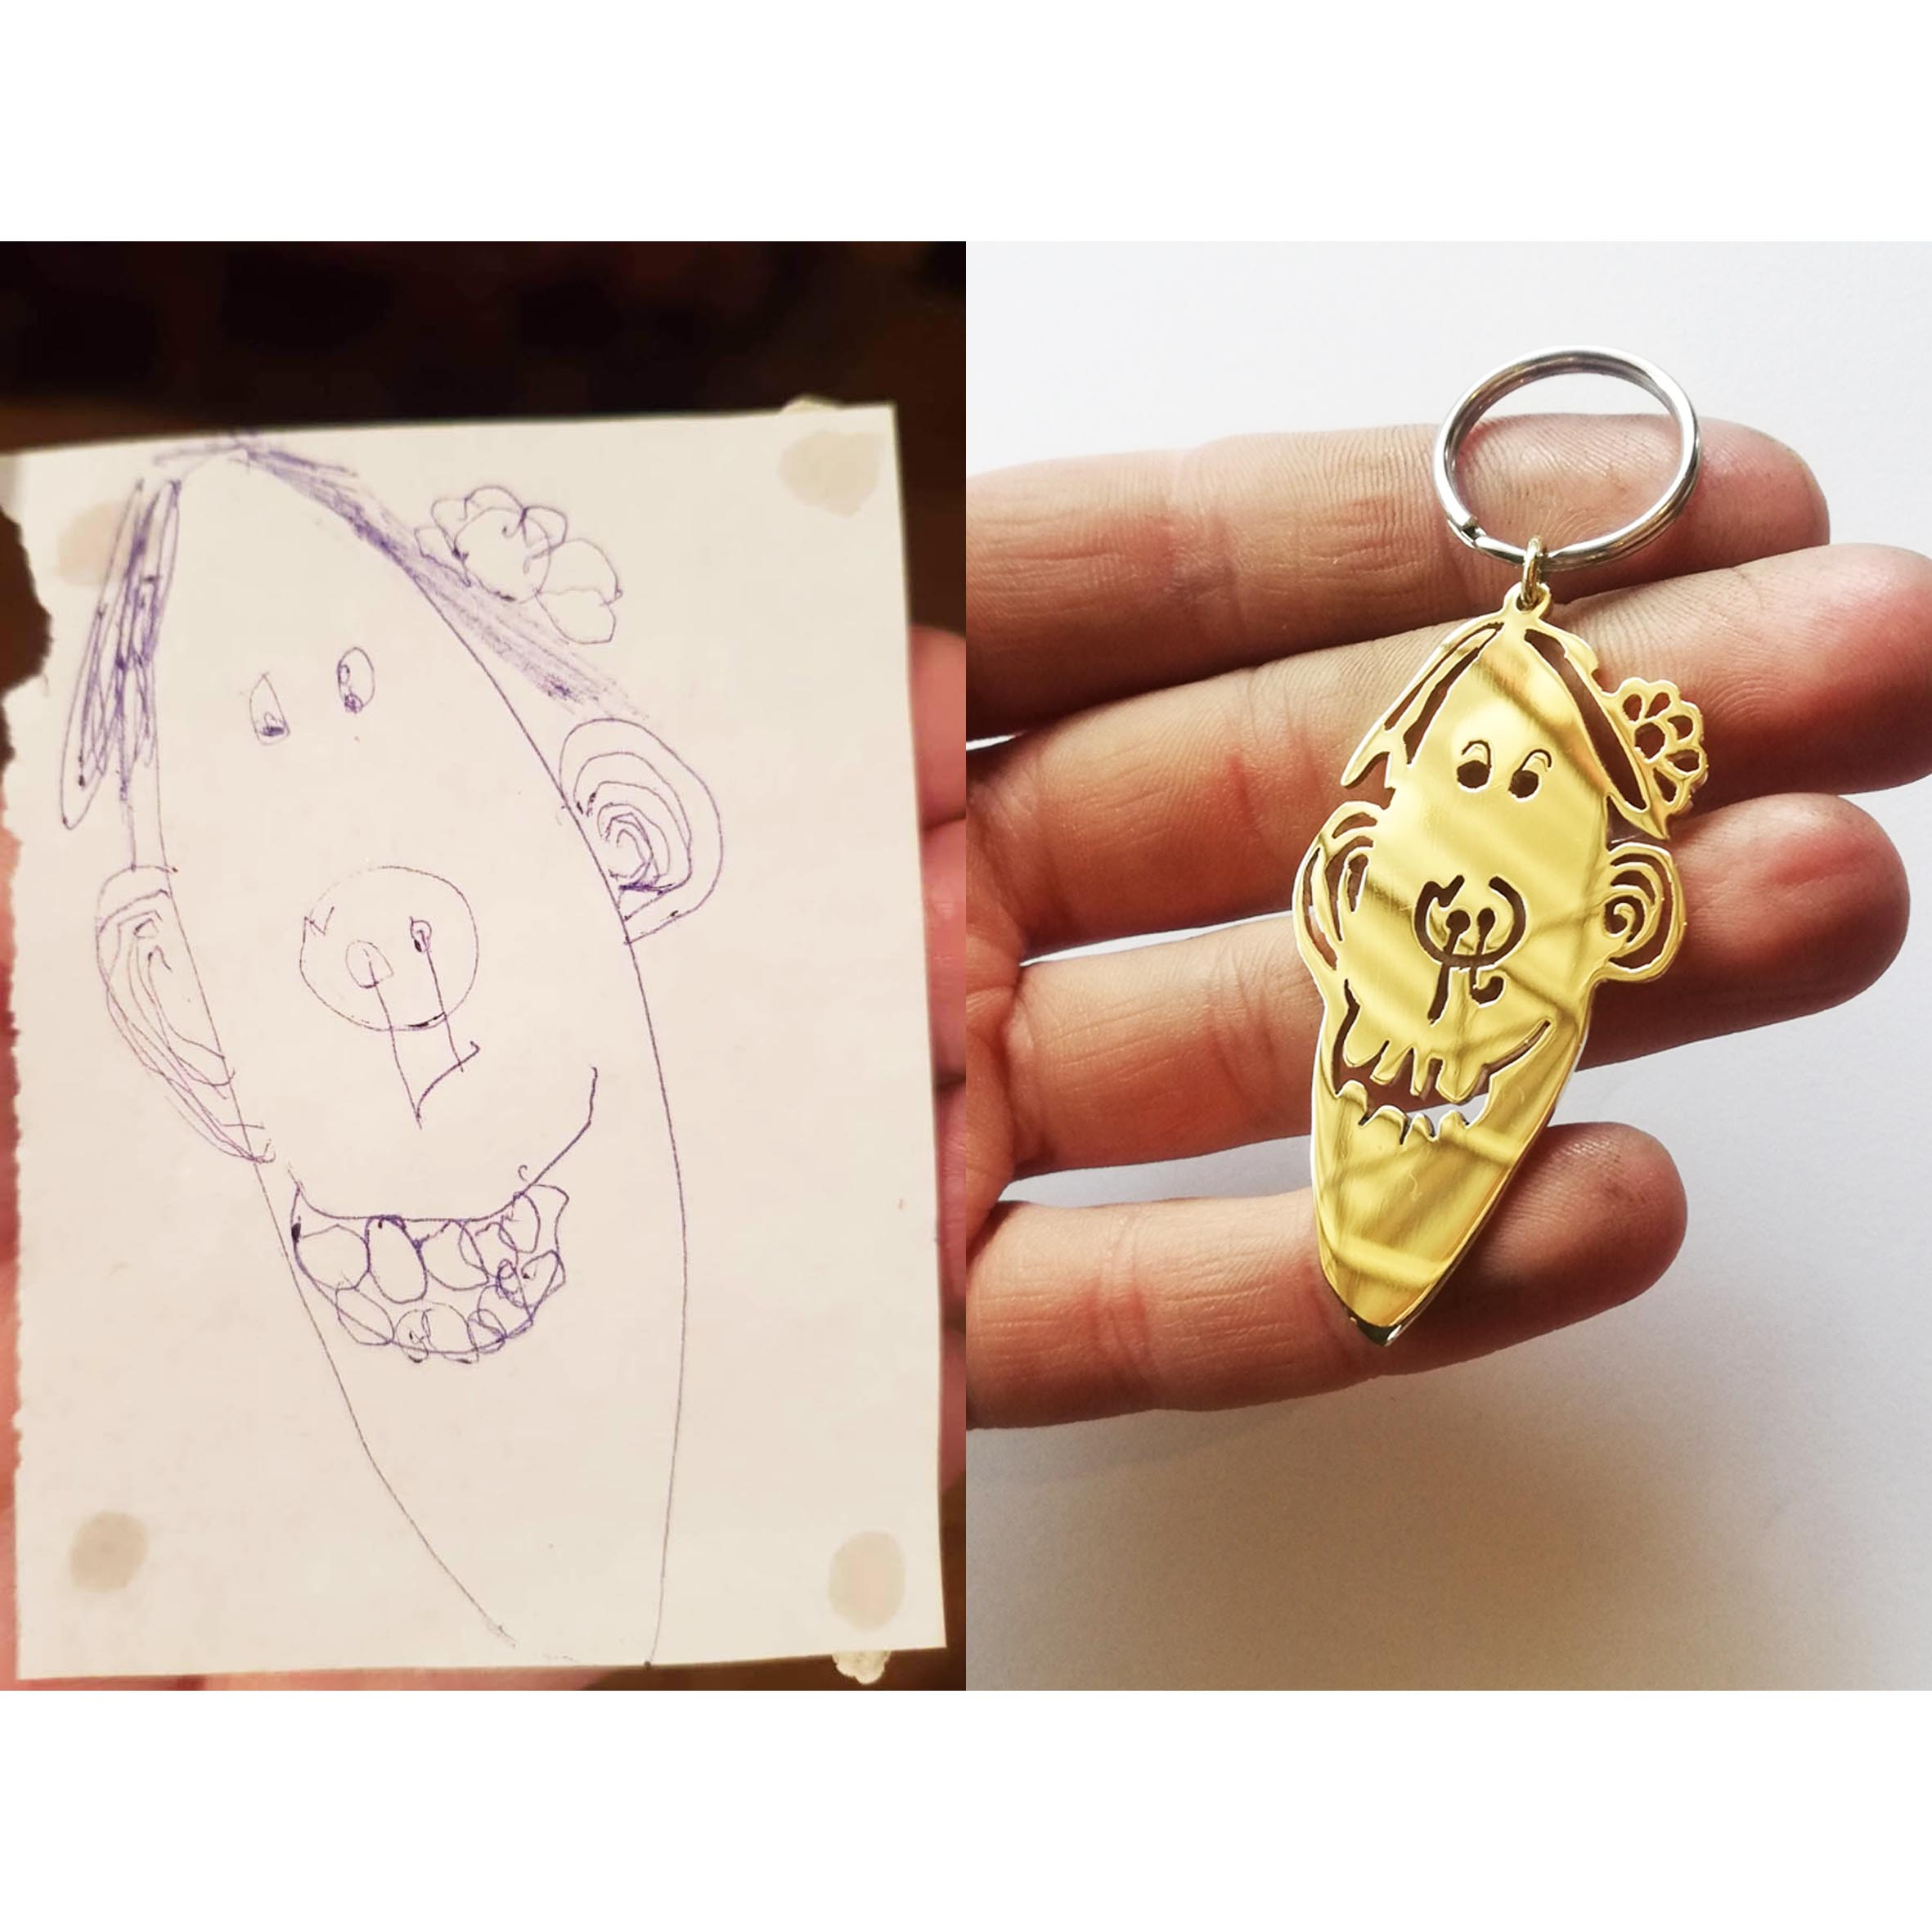 CUSTOM KIDDIES ART Keychain